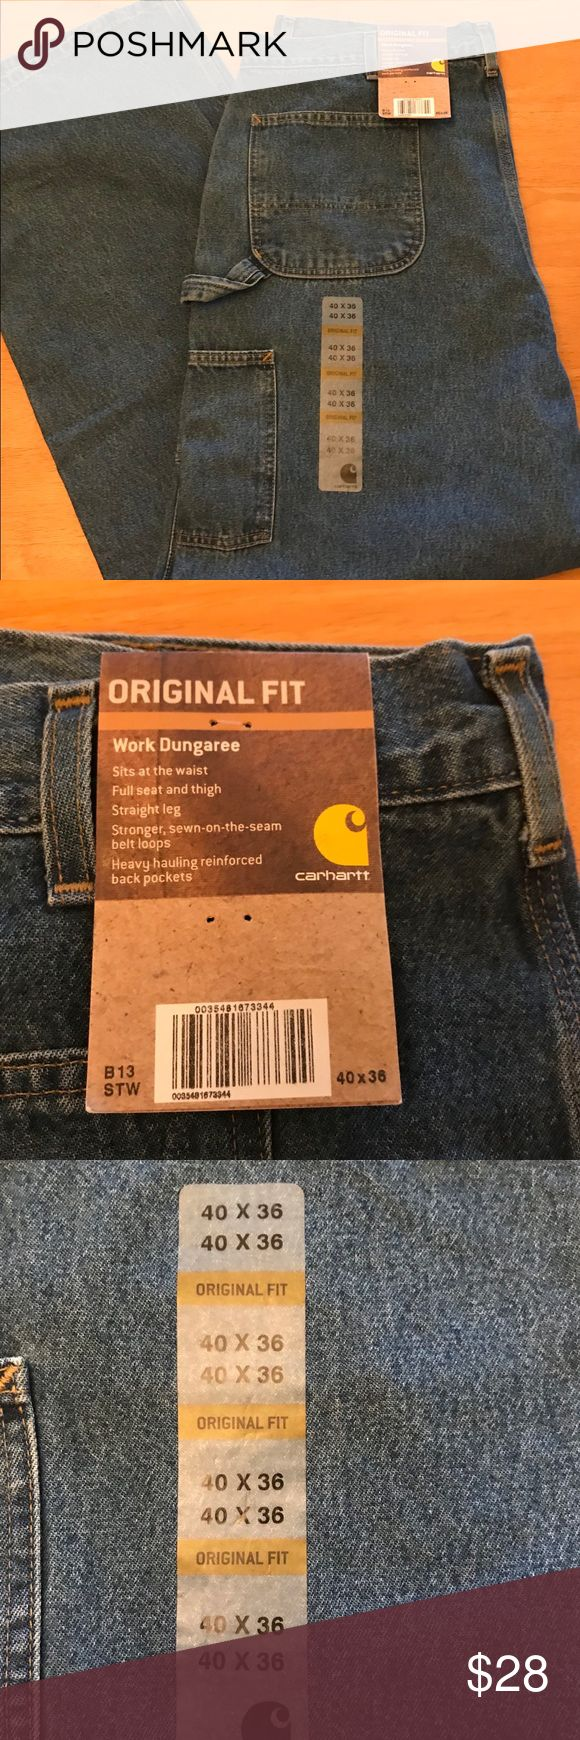 Carhartt Work Jeans 40 x 36 New NWT Carpenter pant These carhartt work dungarees are brand new with tags! Size 40x36   From a smoke & pet free home!  I have lots of Big & Tall clothes listed so please check out my closet! Carhartt Jeans Relaxed